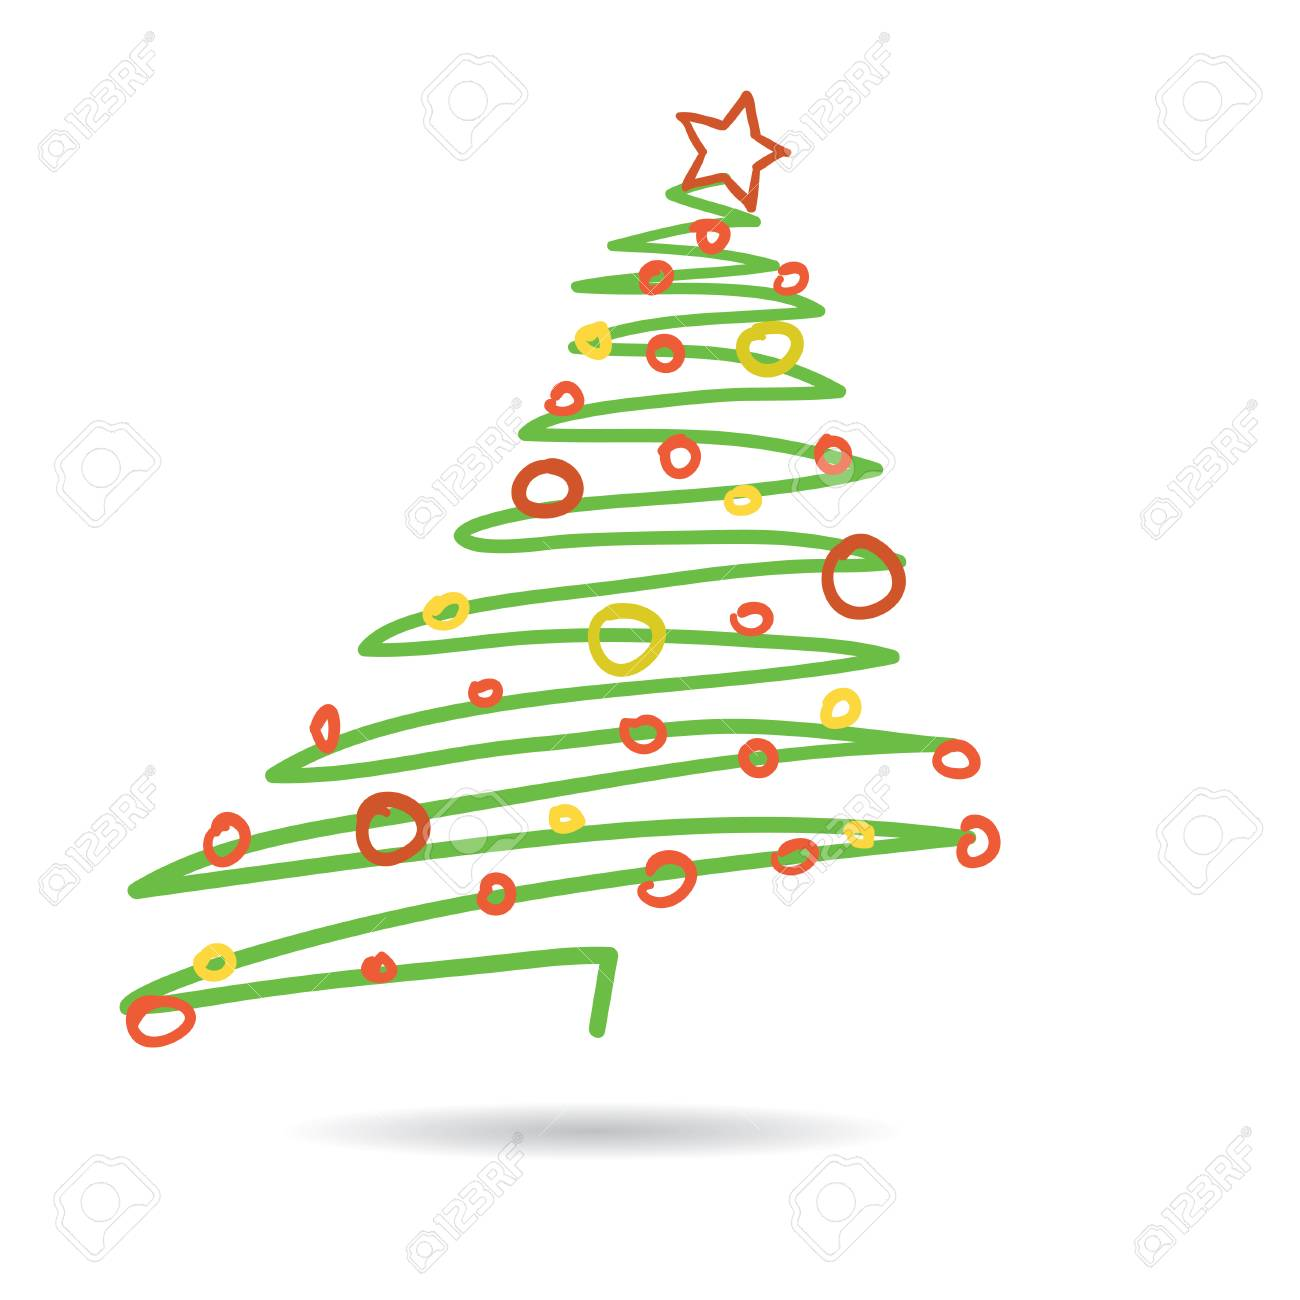 Hand drawn christmas tree isolated on white background, vector illustration - 68098590